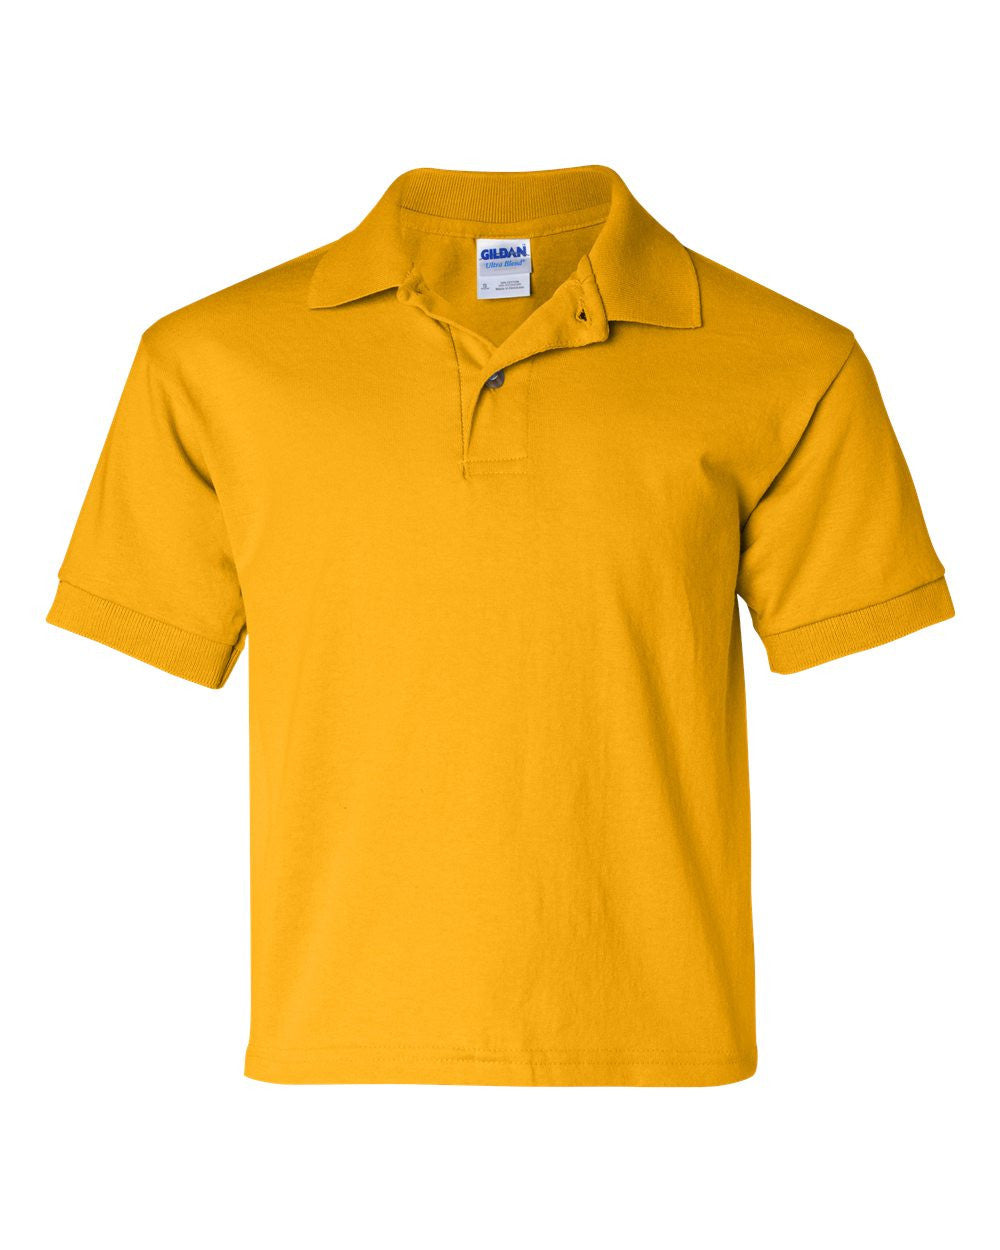 3 pack : Gildan Youth Polos Blend - Discountedrack.com